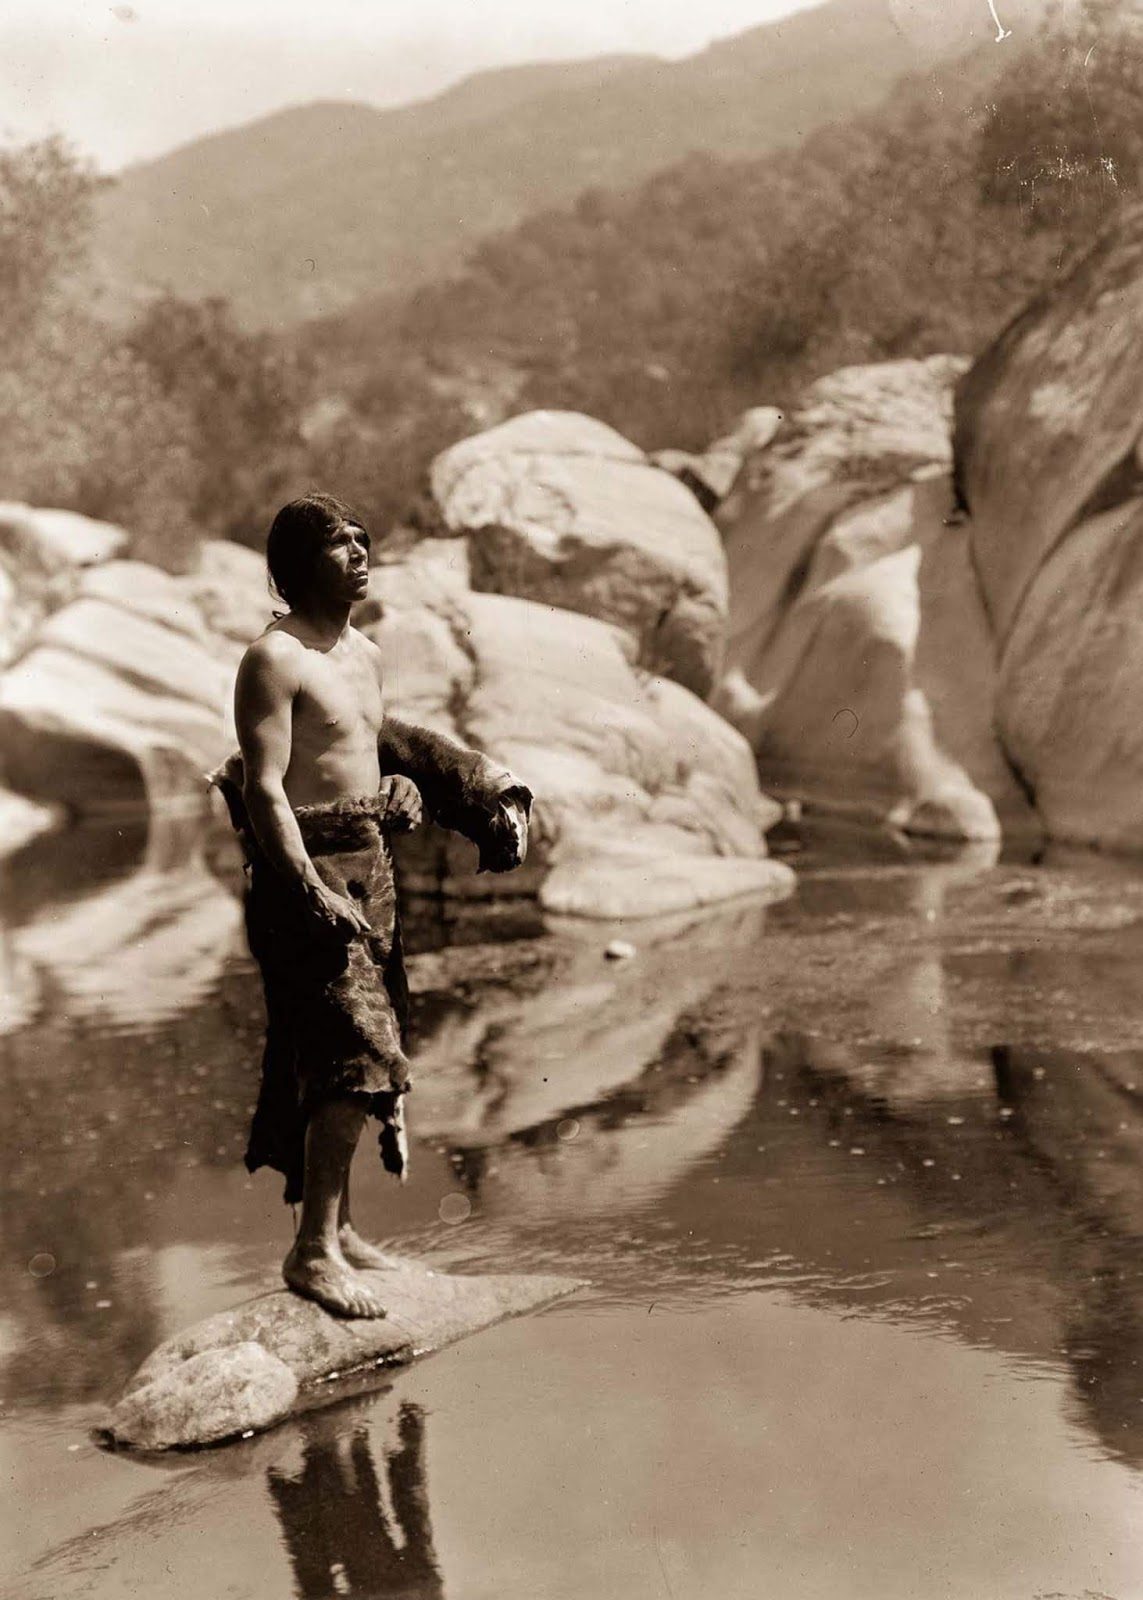 A Mariposa man on the Tule River Reservation. 1924.